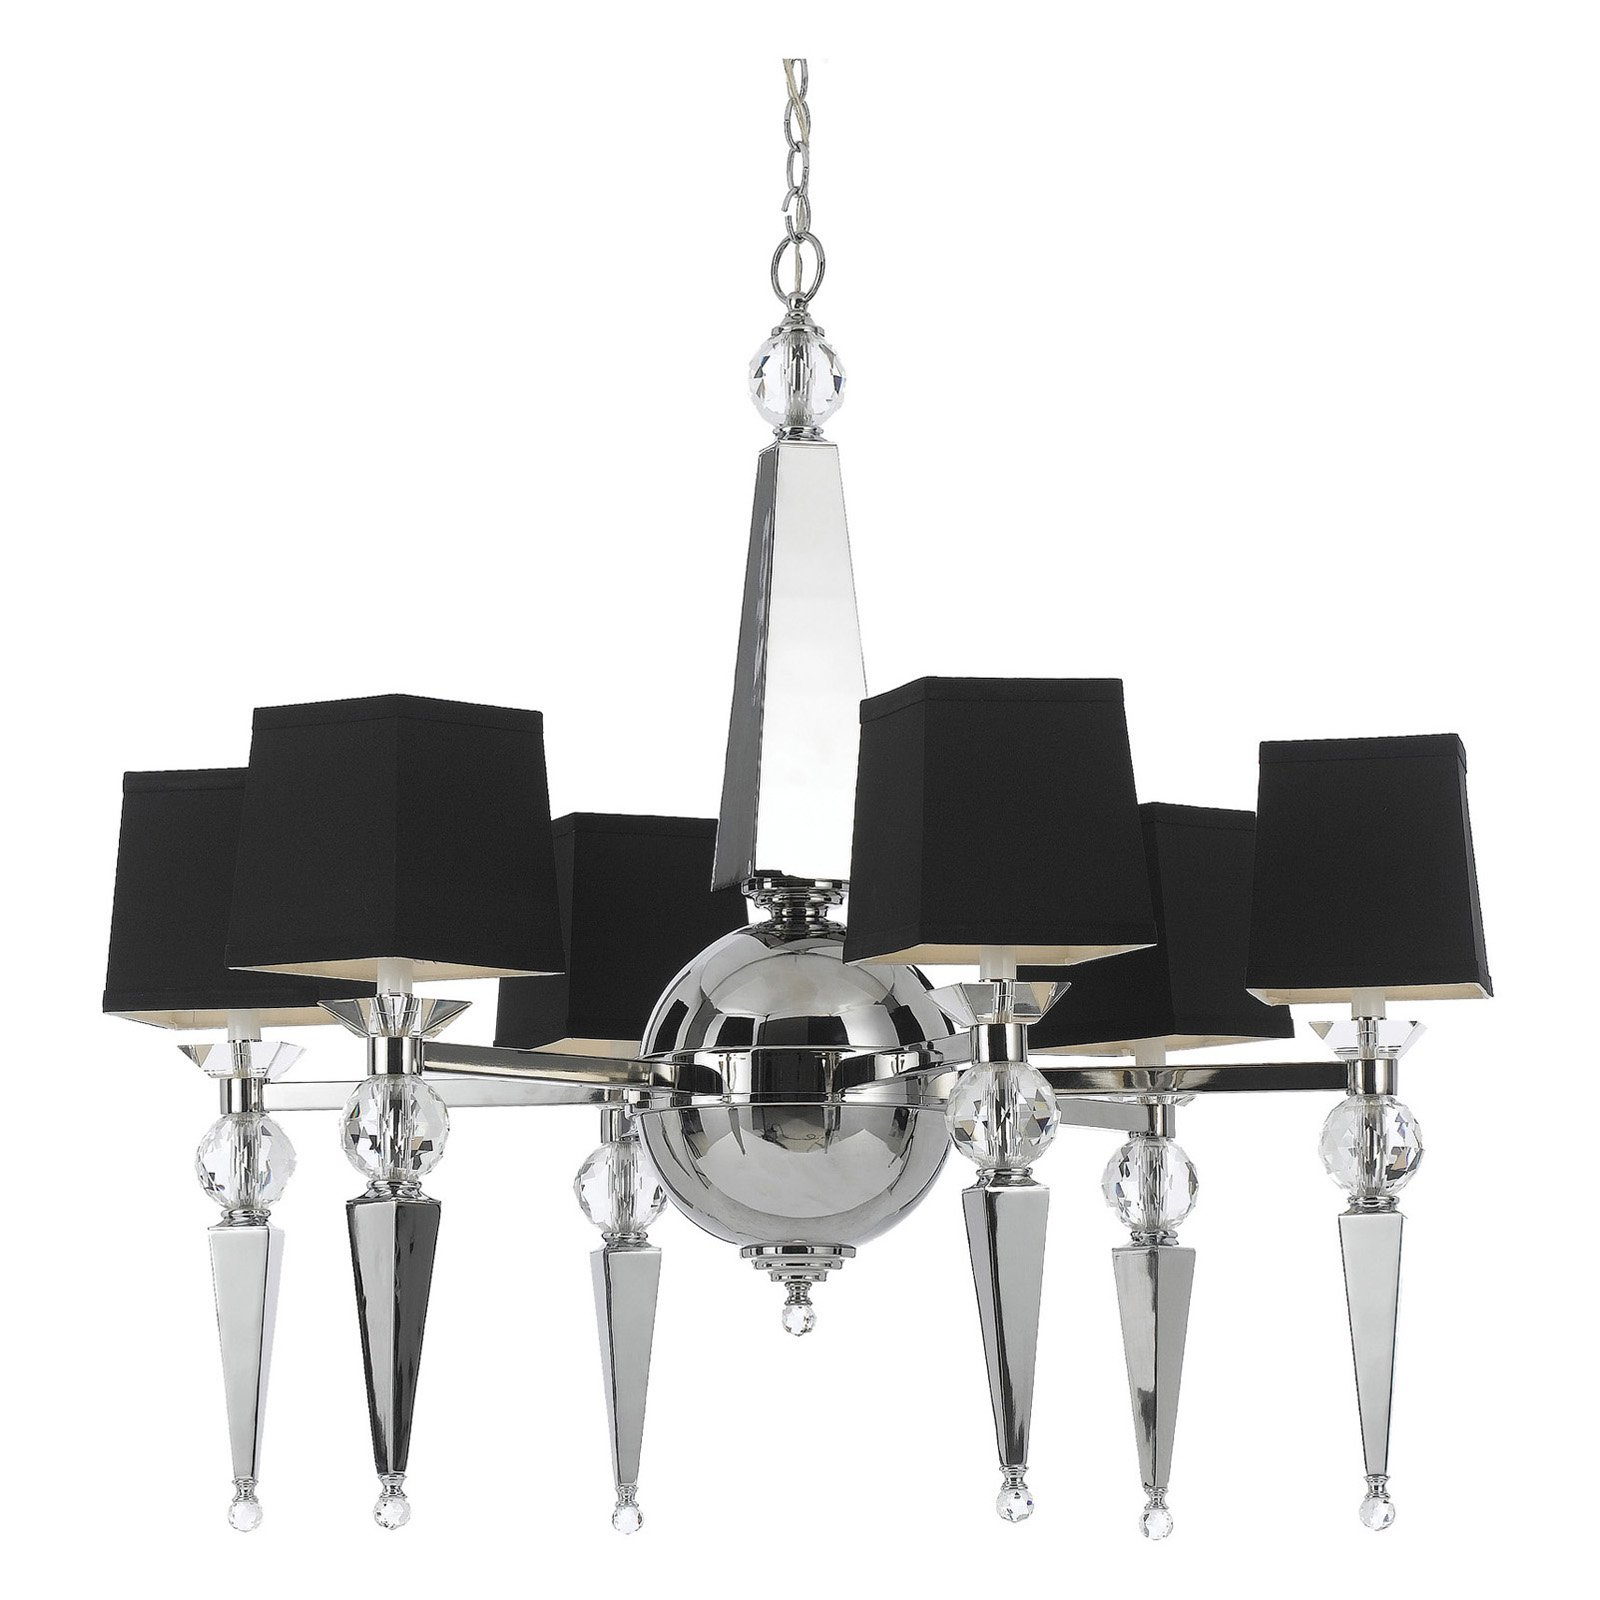 AF Lighting 8405 Six-Light Chandelier